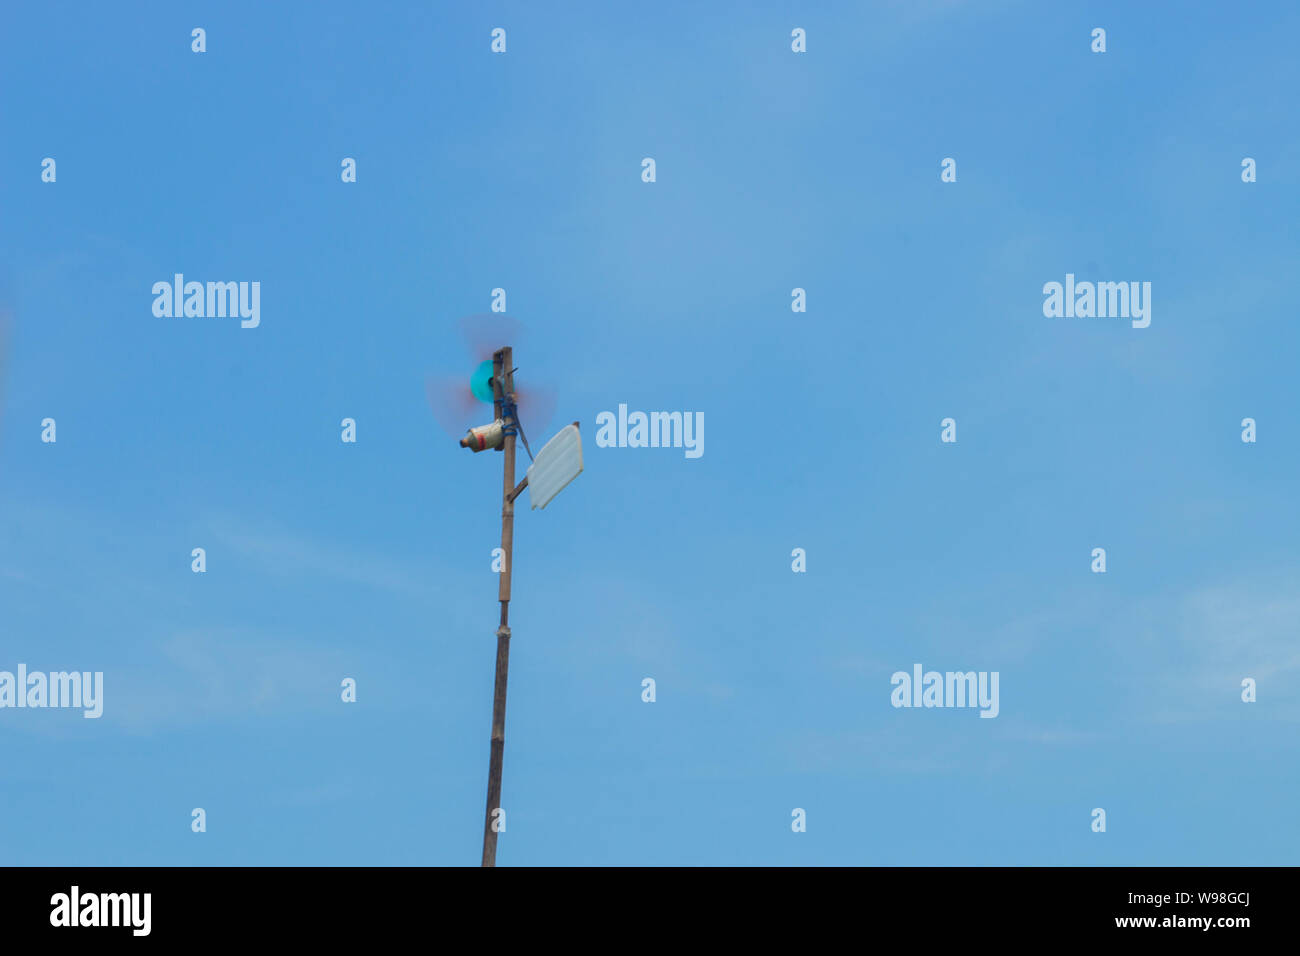 Traditional Windmill Made From Used Can Spinning on The Blue Sky in Rice Field in Indonesia Stock Photo